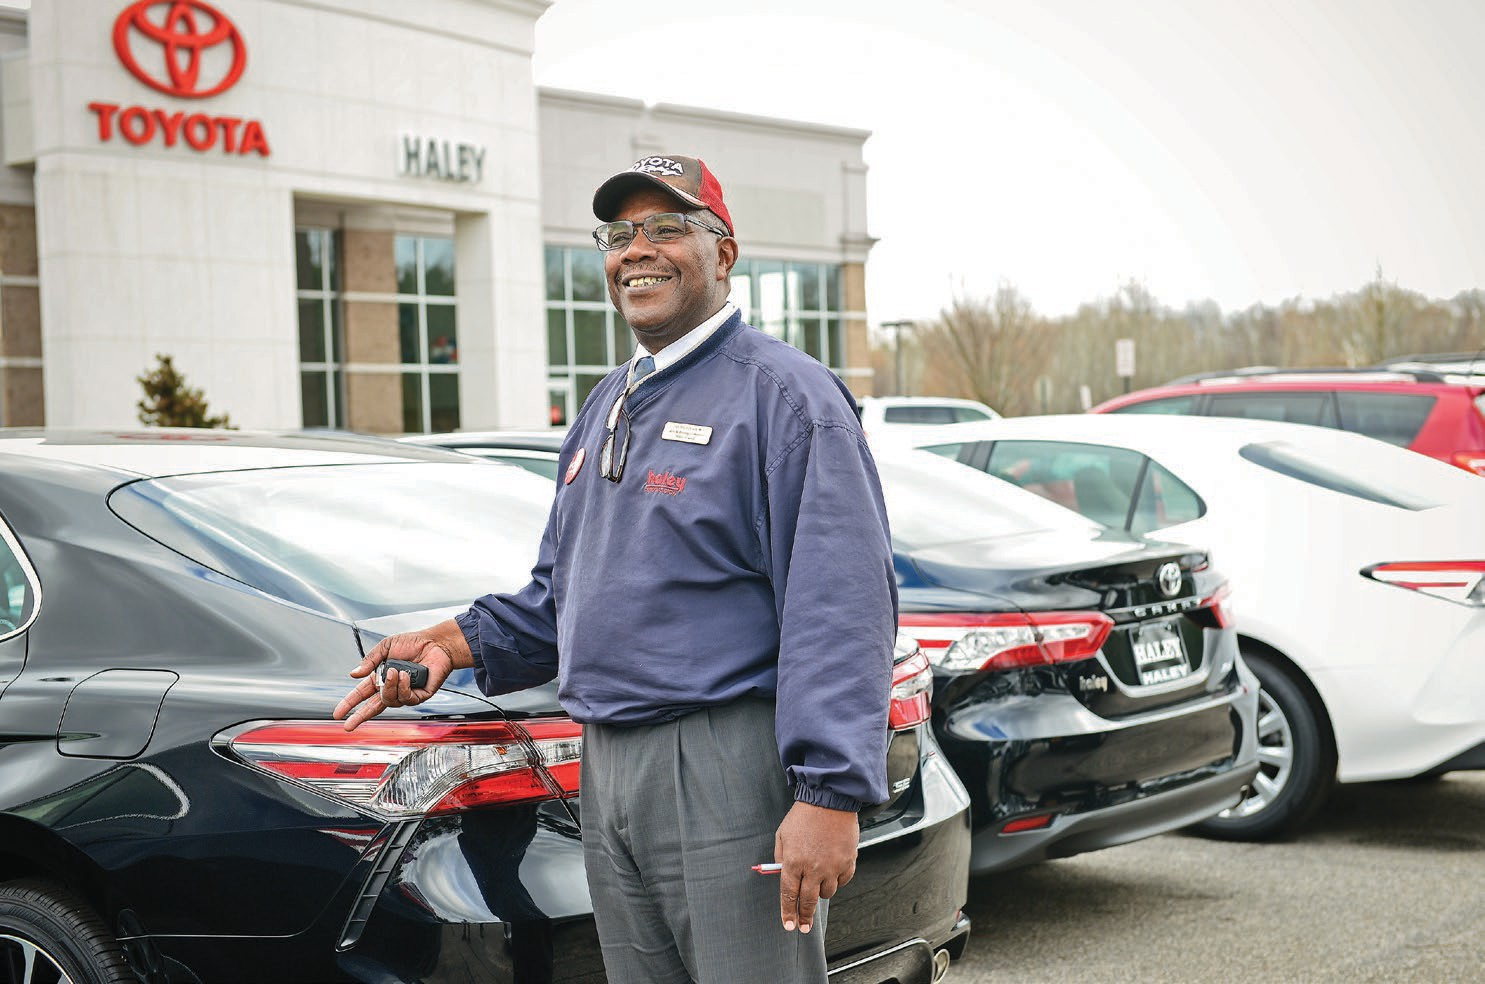 Anthony Gray, A Longtime Dealer Representative At Haley Toyota On Hull  Street Road, Says